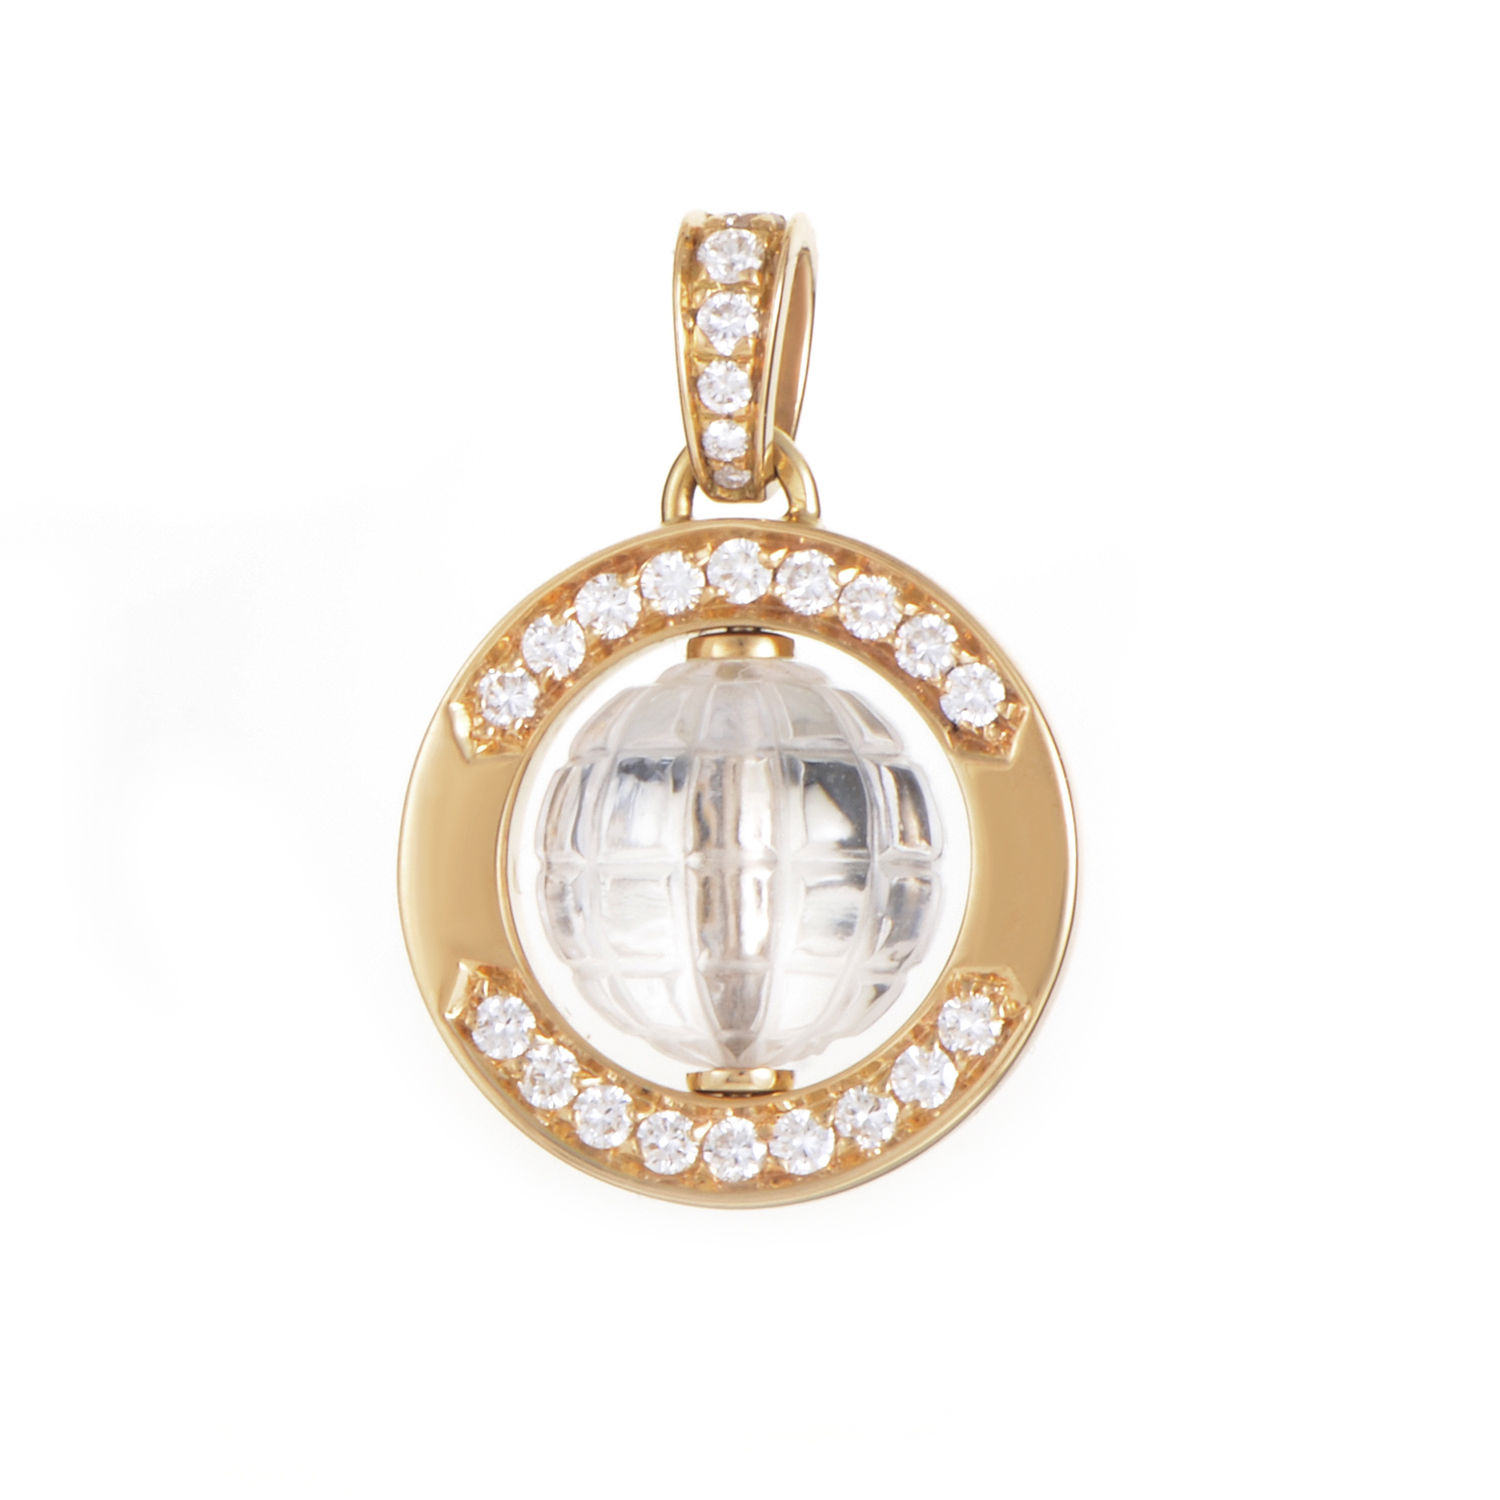 Boucheron 18K Yellow Gold Crystal & Diamond Pendant